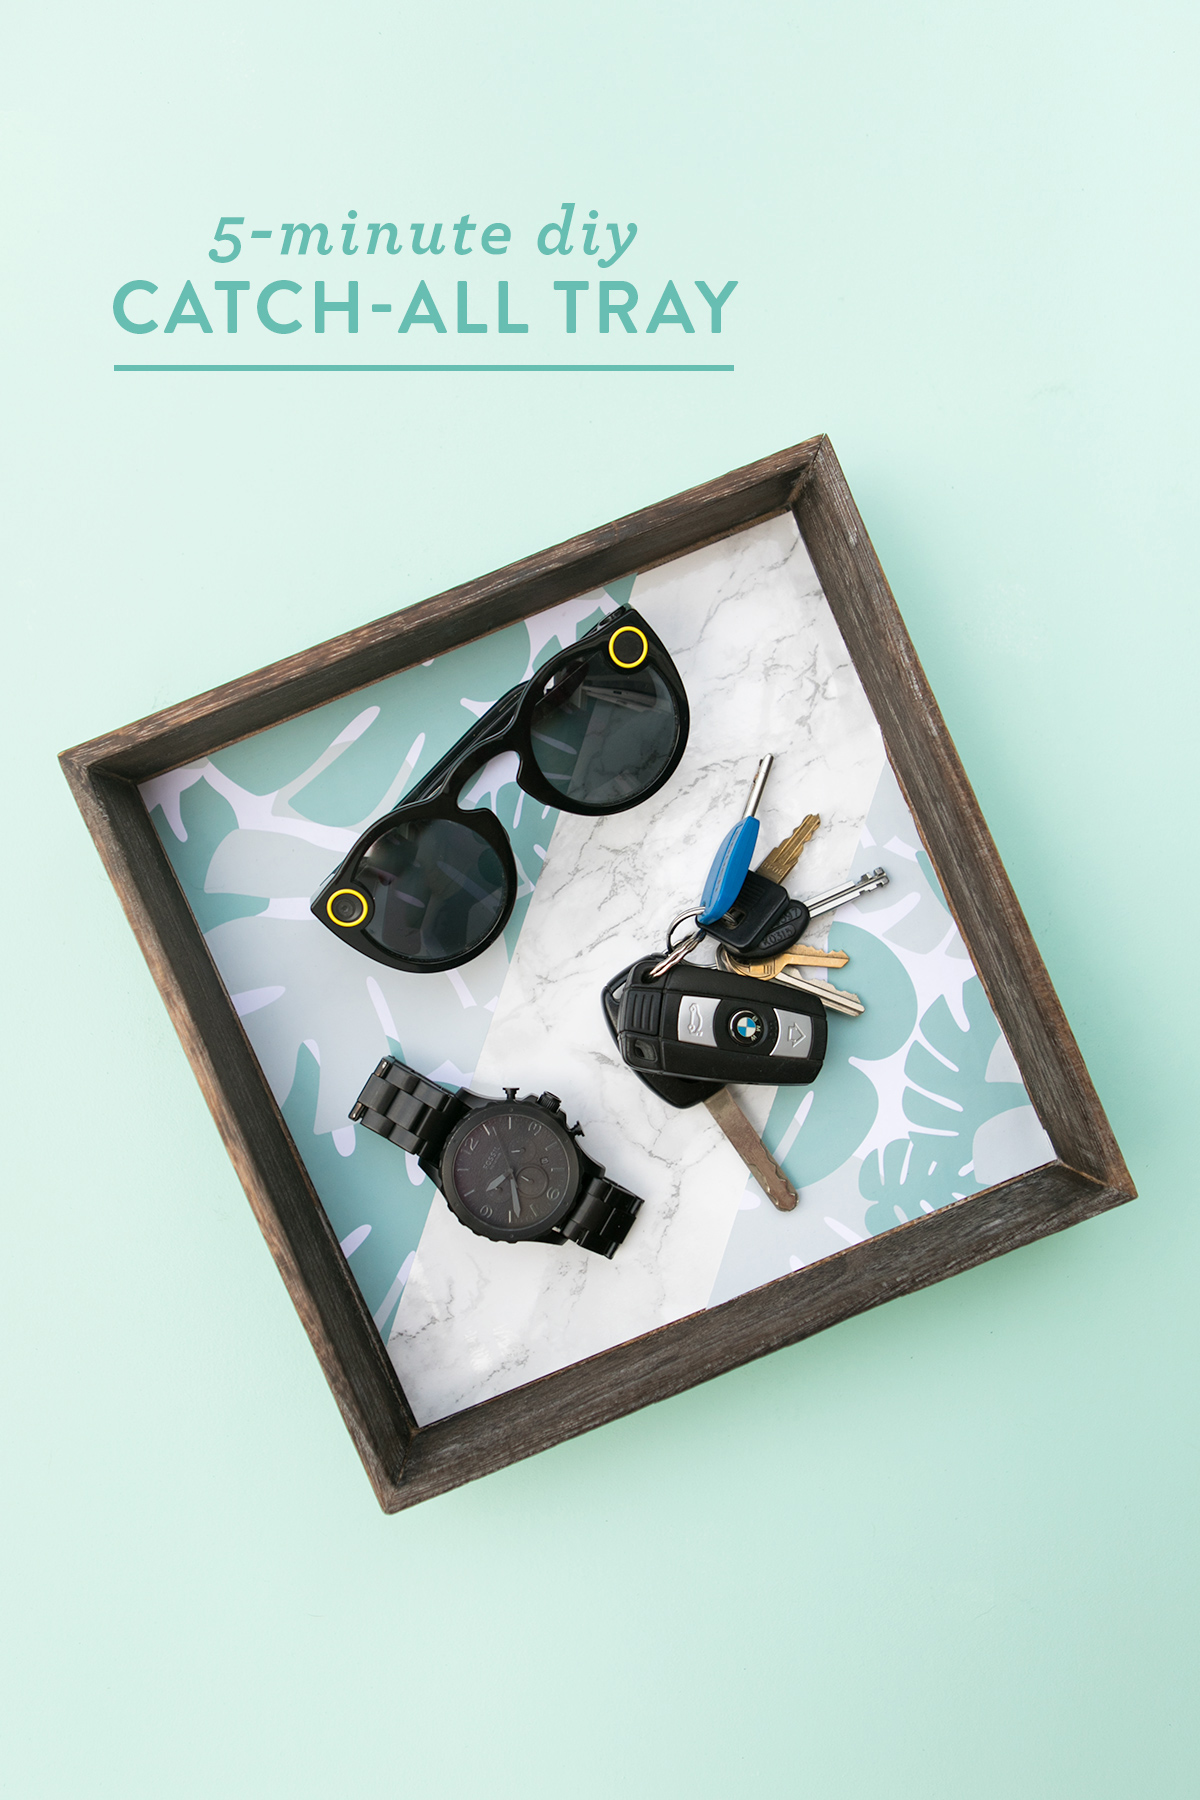 Make this custom catch-all tray in 5 minutes! Makes a perfect gift for dads on Father's Day!